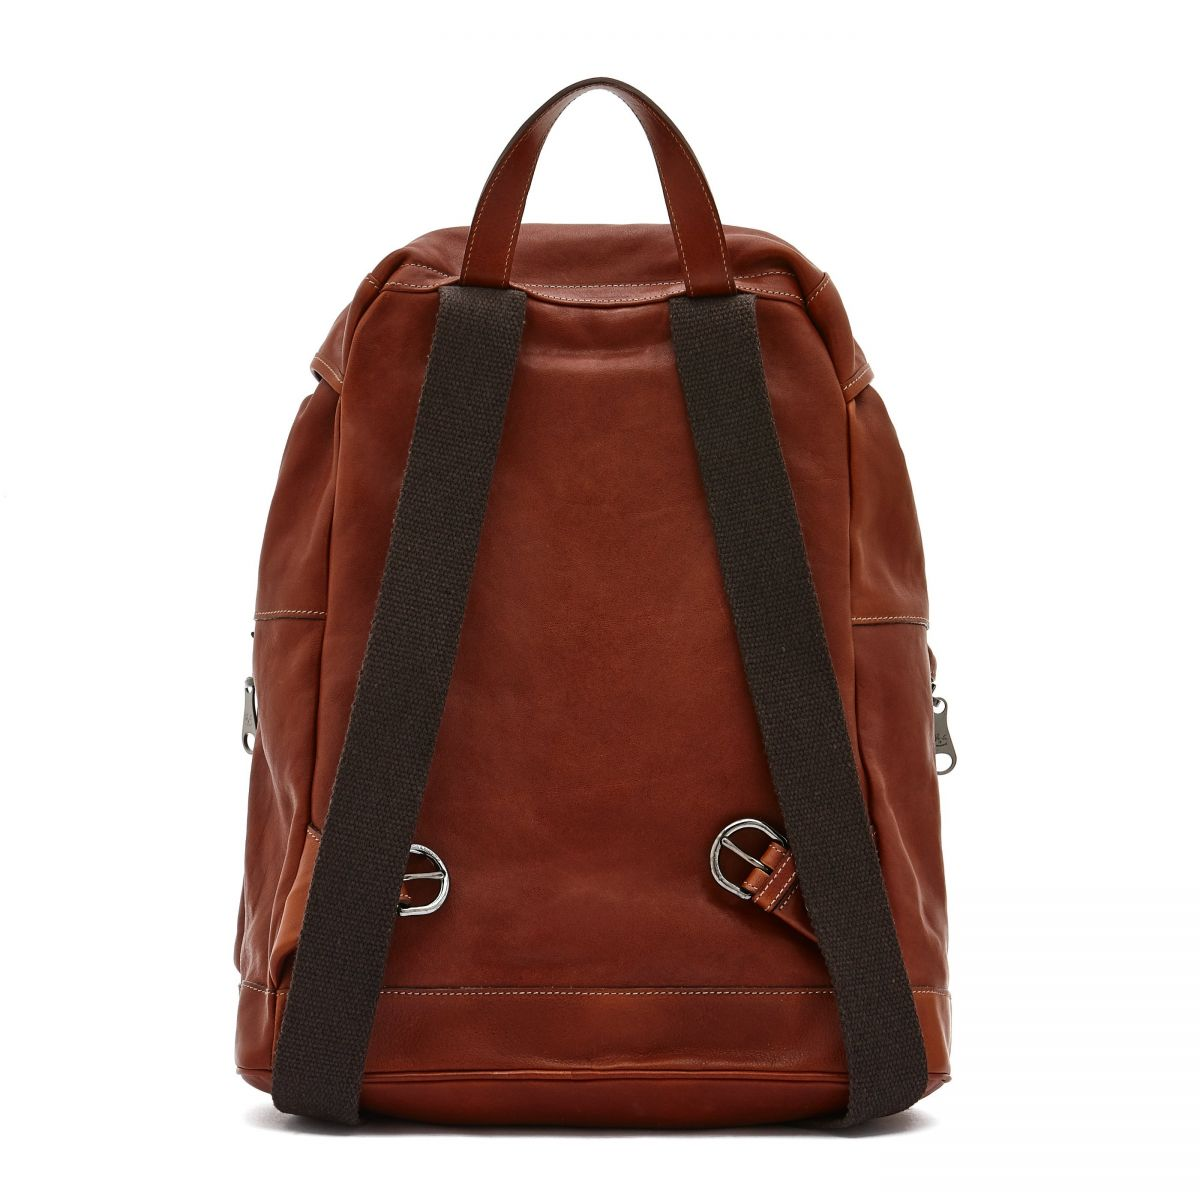 Men's Backpack Luca in Vintage Cowhide Leather BBA041 color Dark Brown Seppia | Details